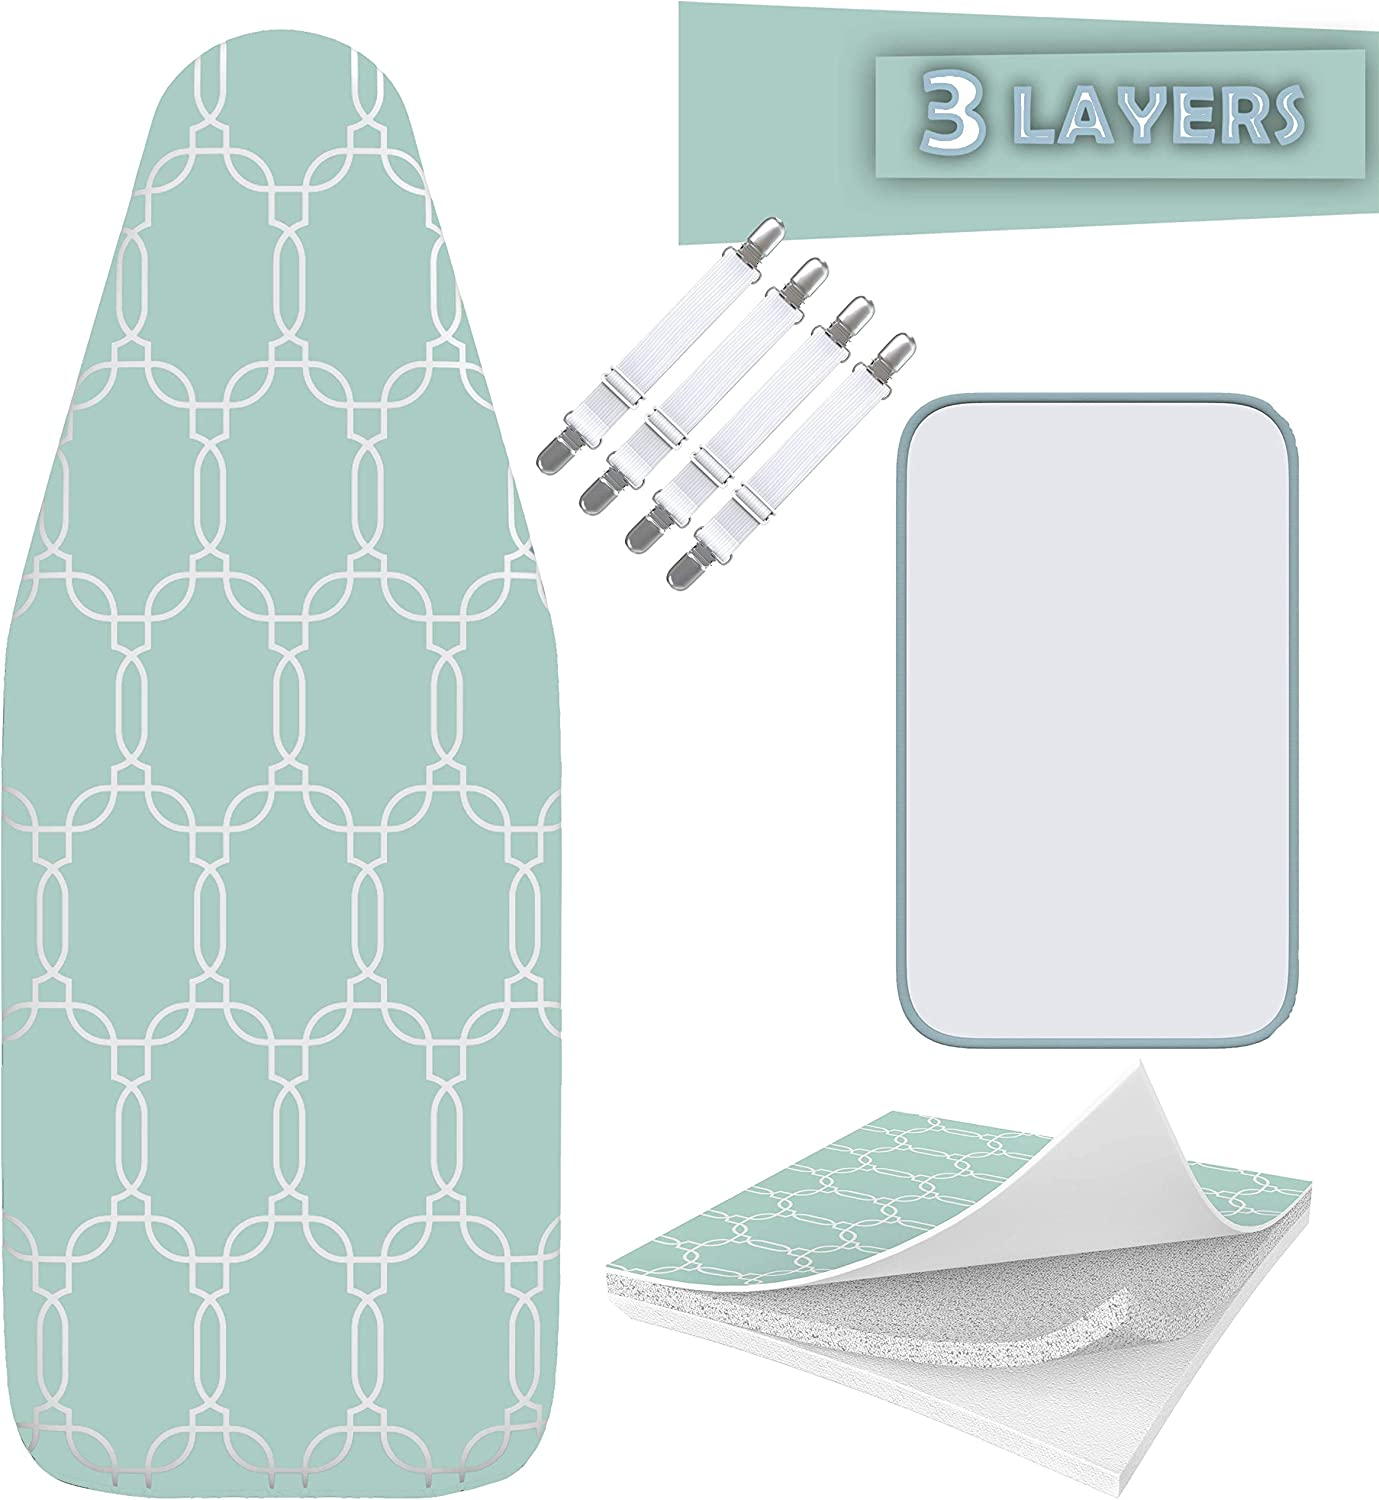 "Balffor Silicone Wider Ironing Board Cover and Pad - Scorch Proof TriFusion Iron Board Cover (White & Green) with Bonus Adjustable Fasteners and Protective Mesh (18"" X 49"", Geometric Green)"